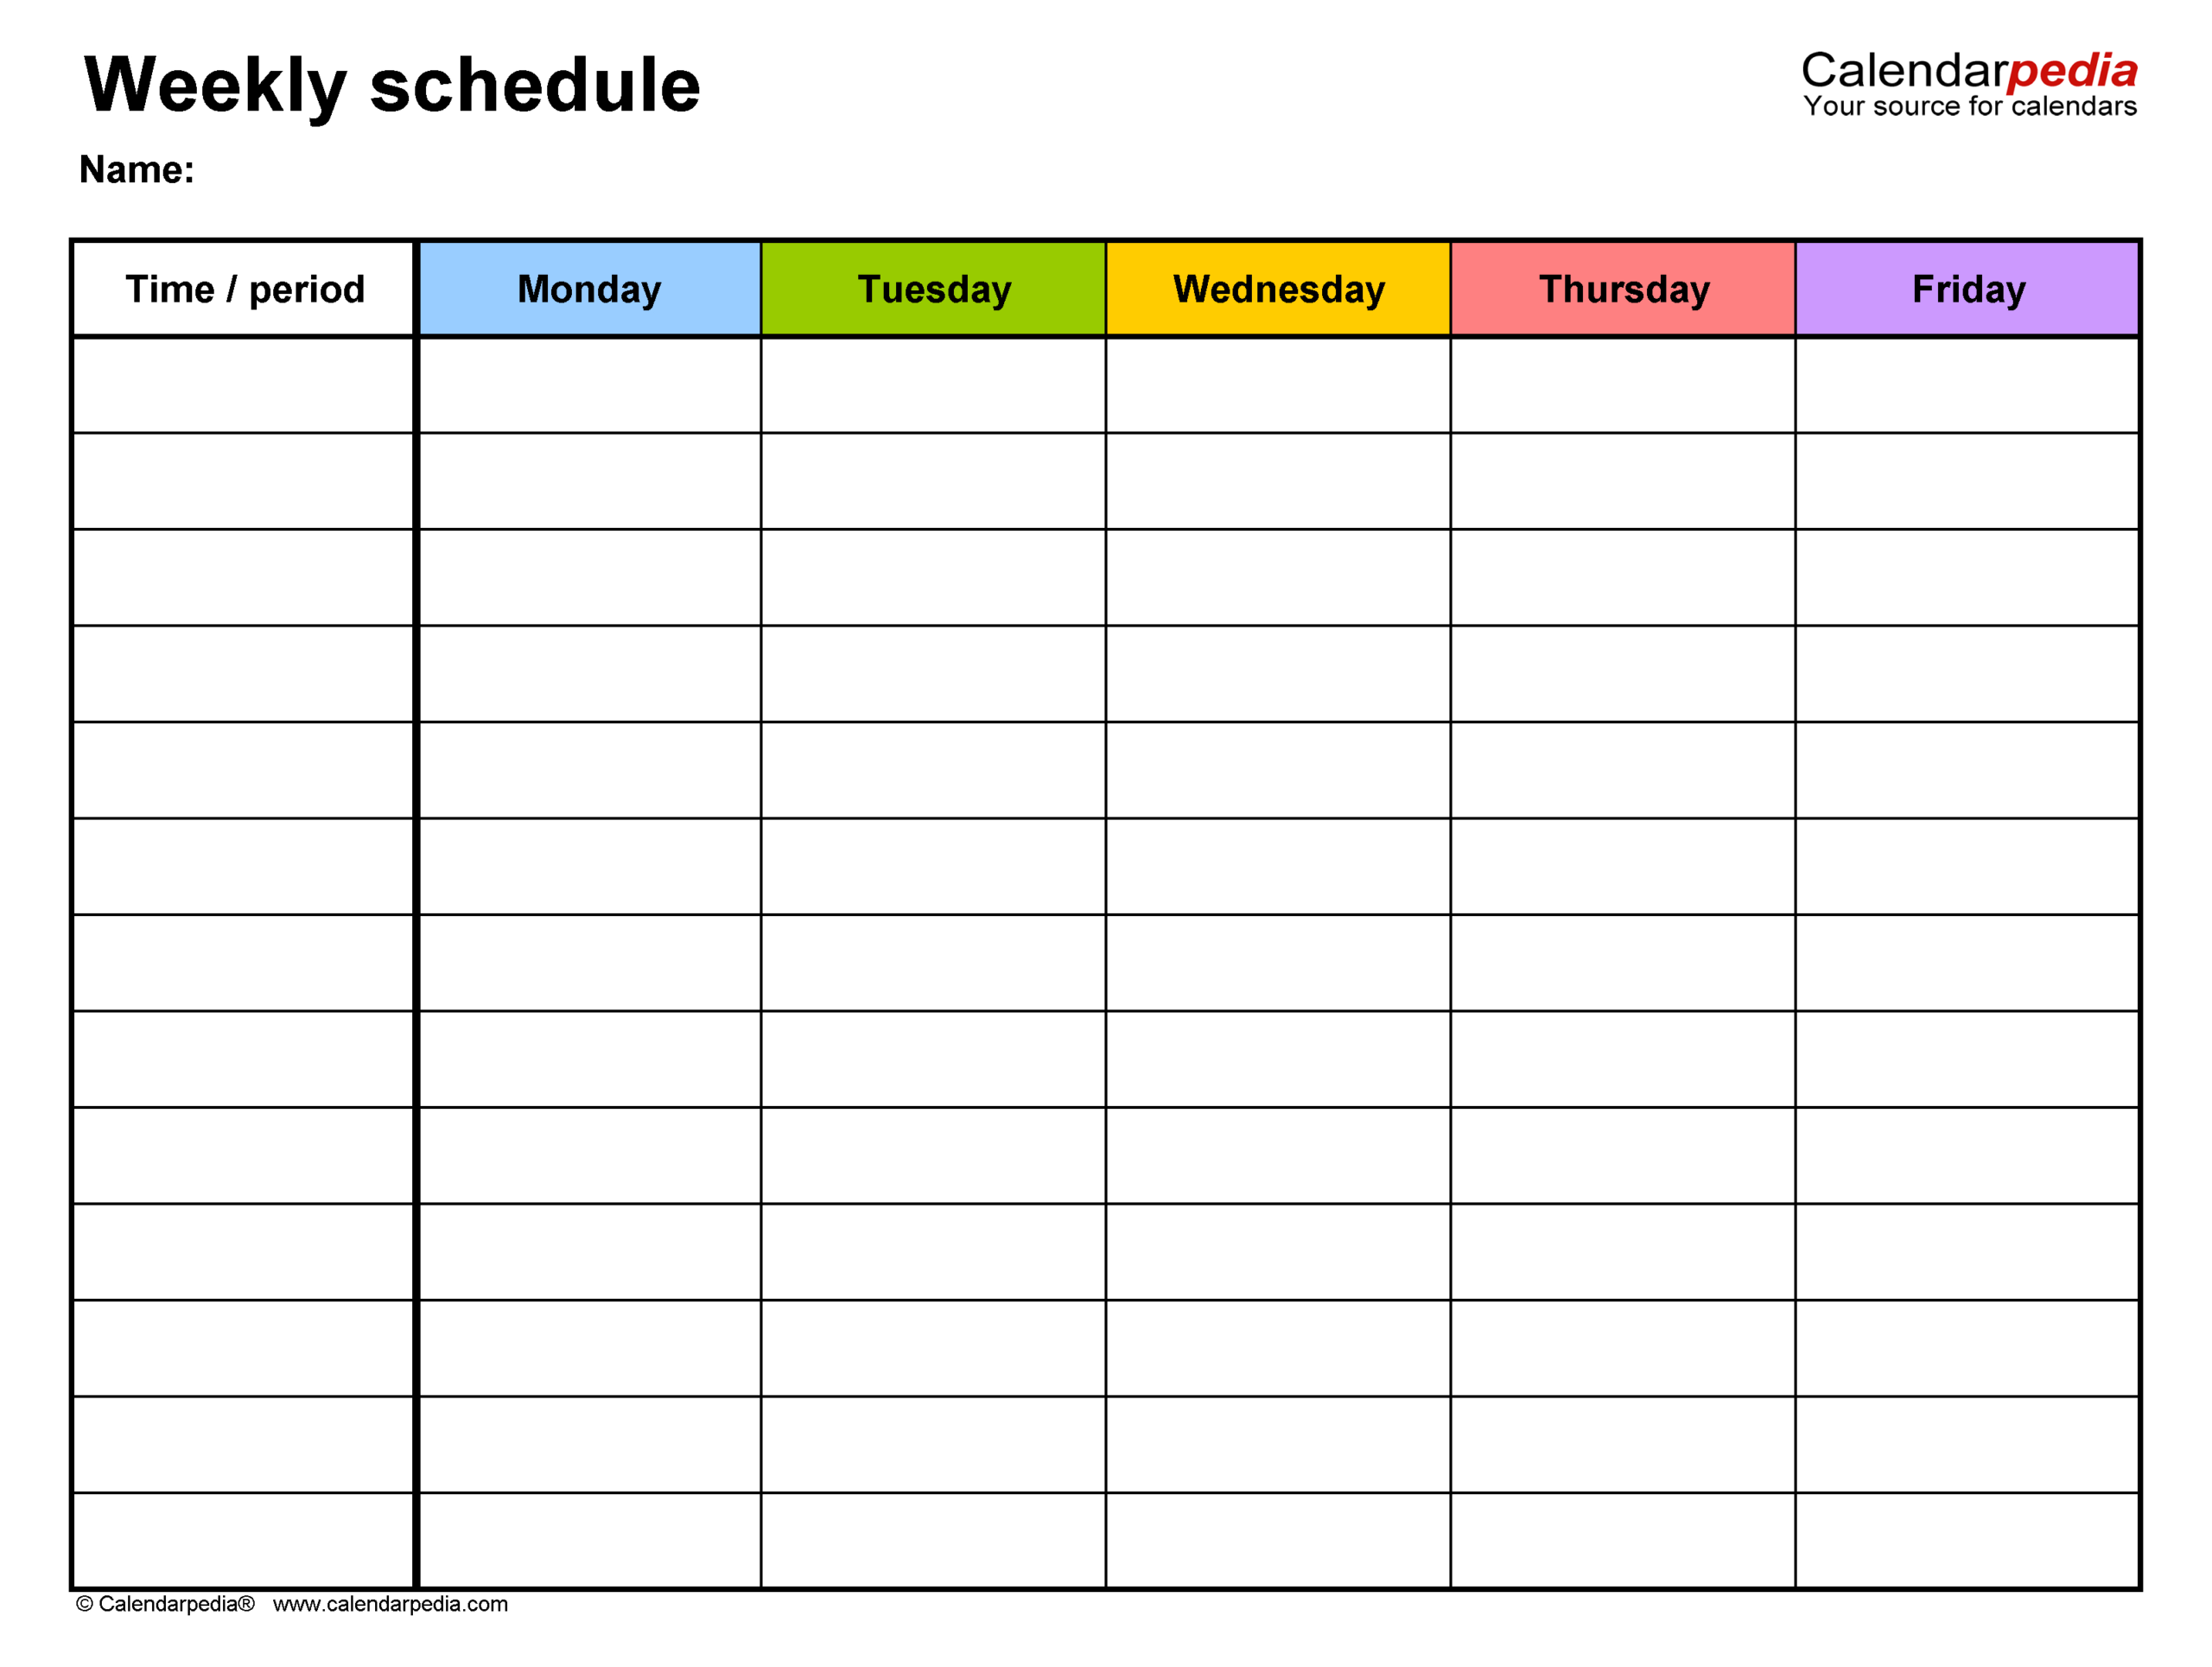 Free Weekly Schedule Templates For Excel  18 Templates pertaining to Monday Through Friday Calendar Template Excel